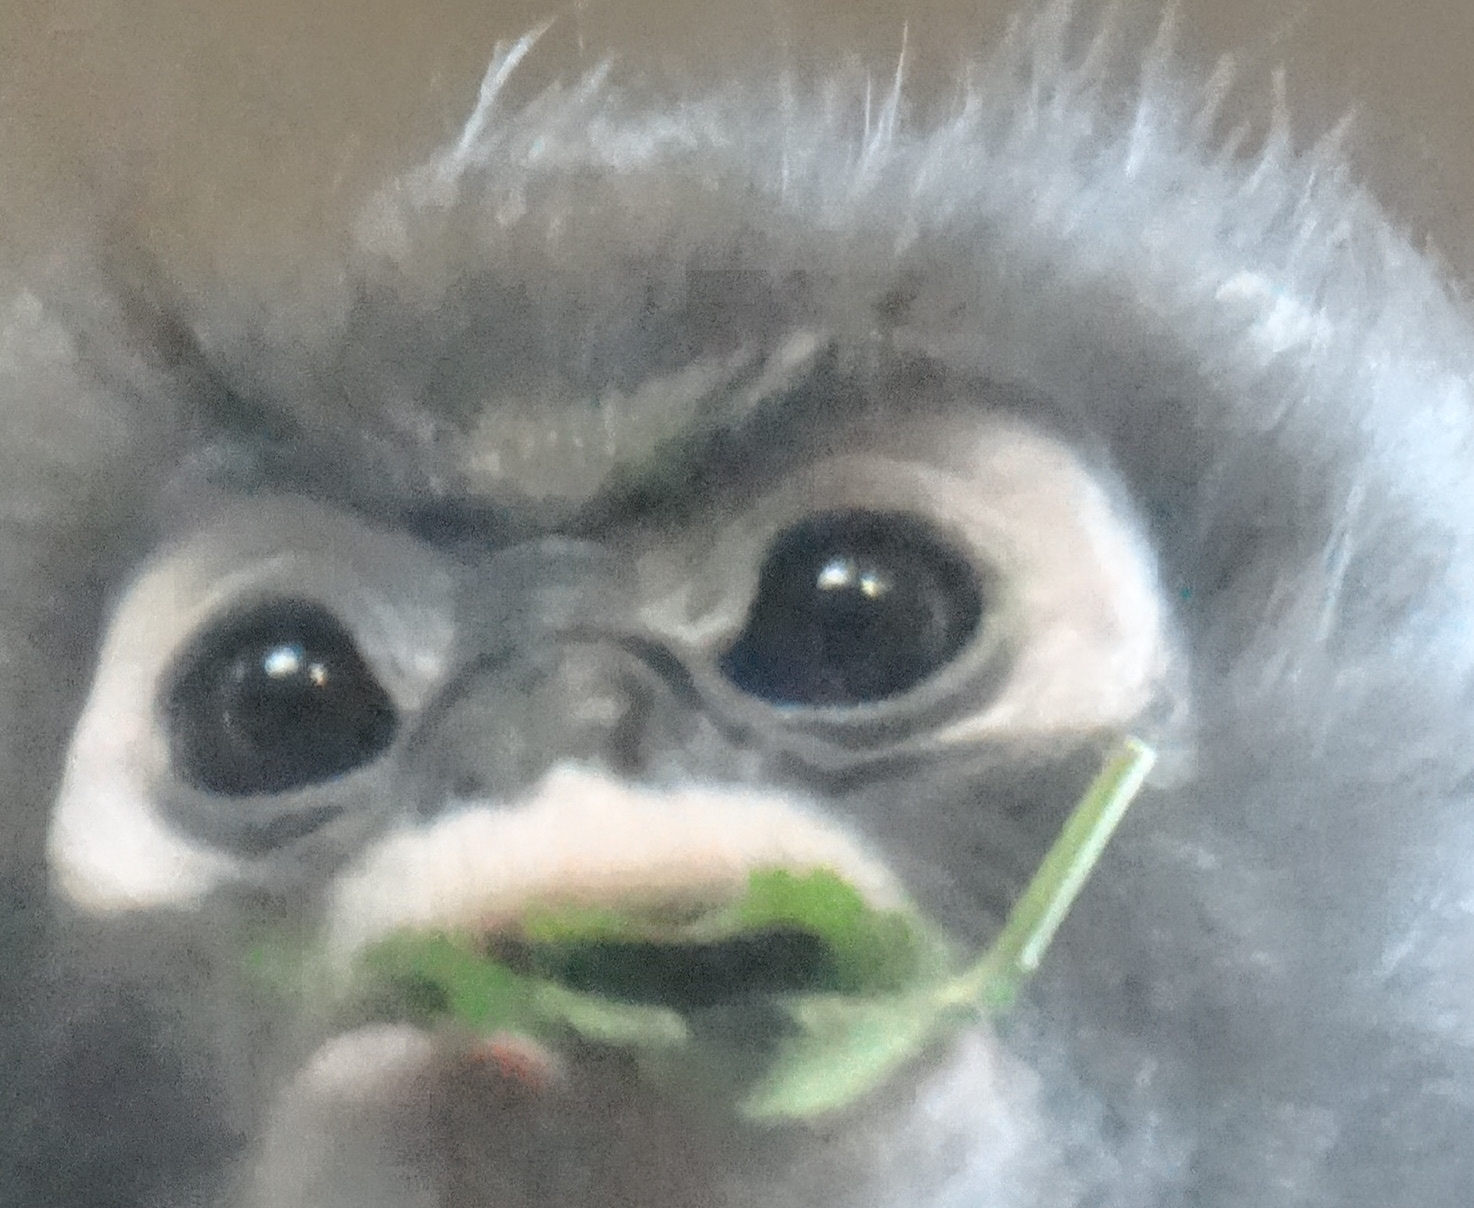 grainy monkey image